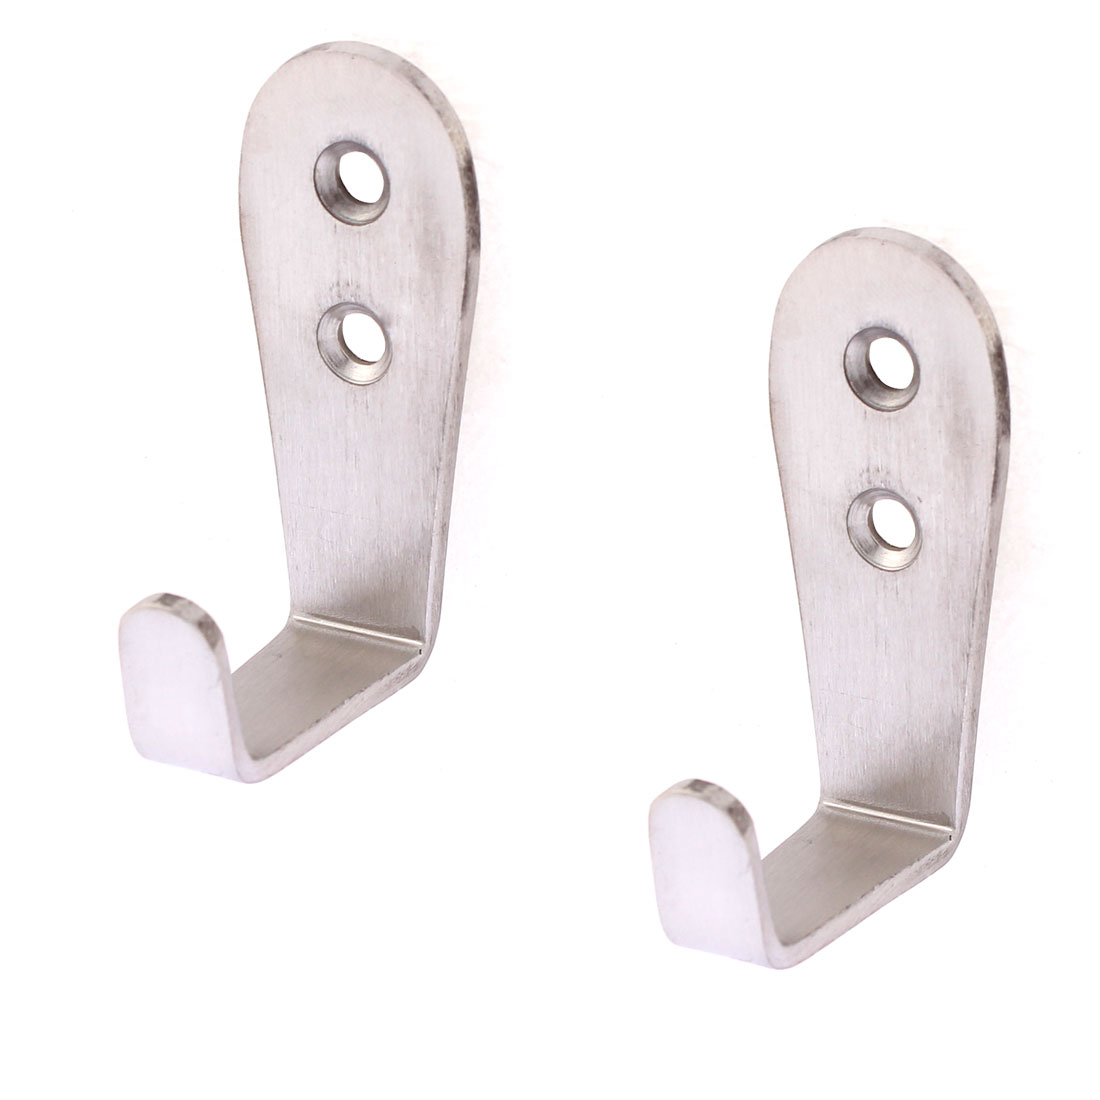 Home Kitchen Wall Mounted Clothes Handbag Hook Hanger 62mm Length 2pcs